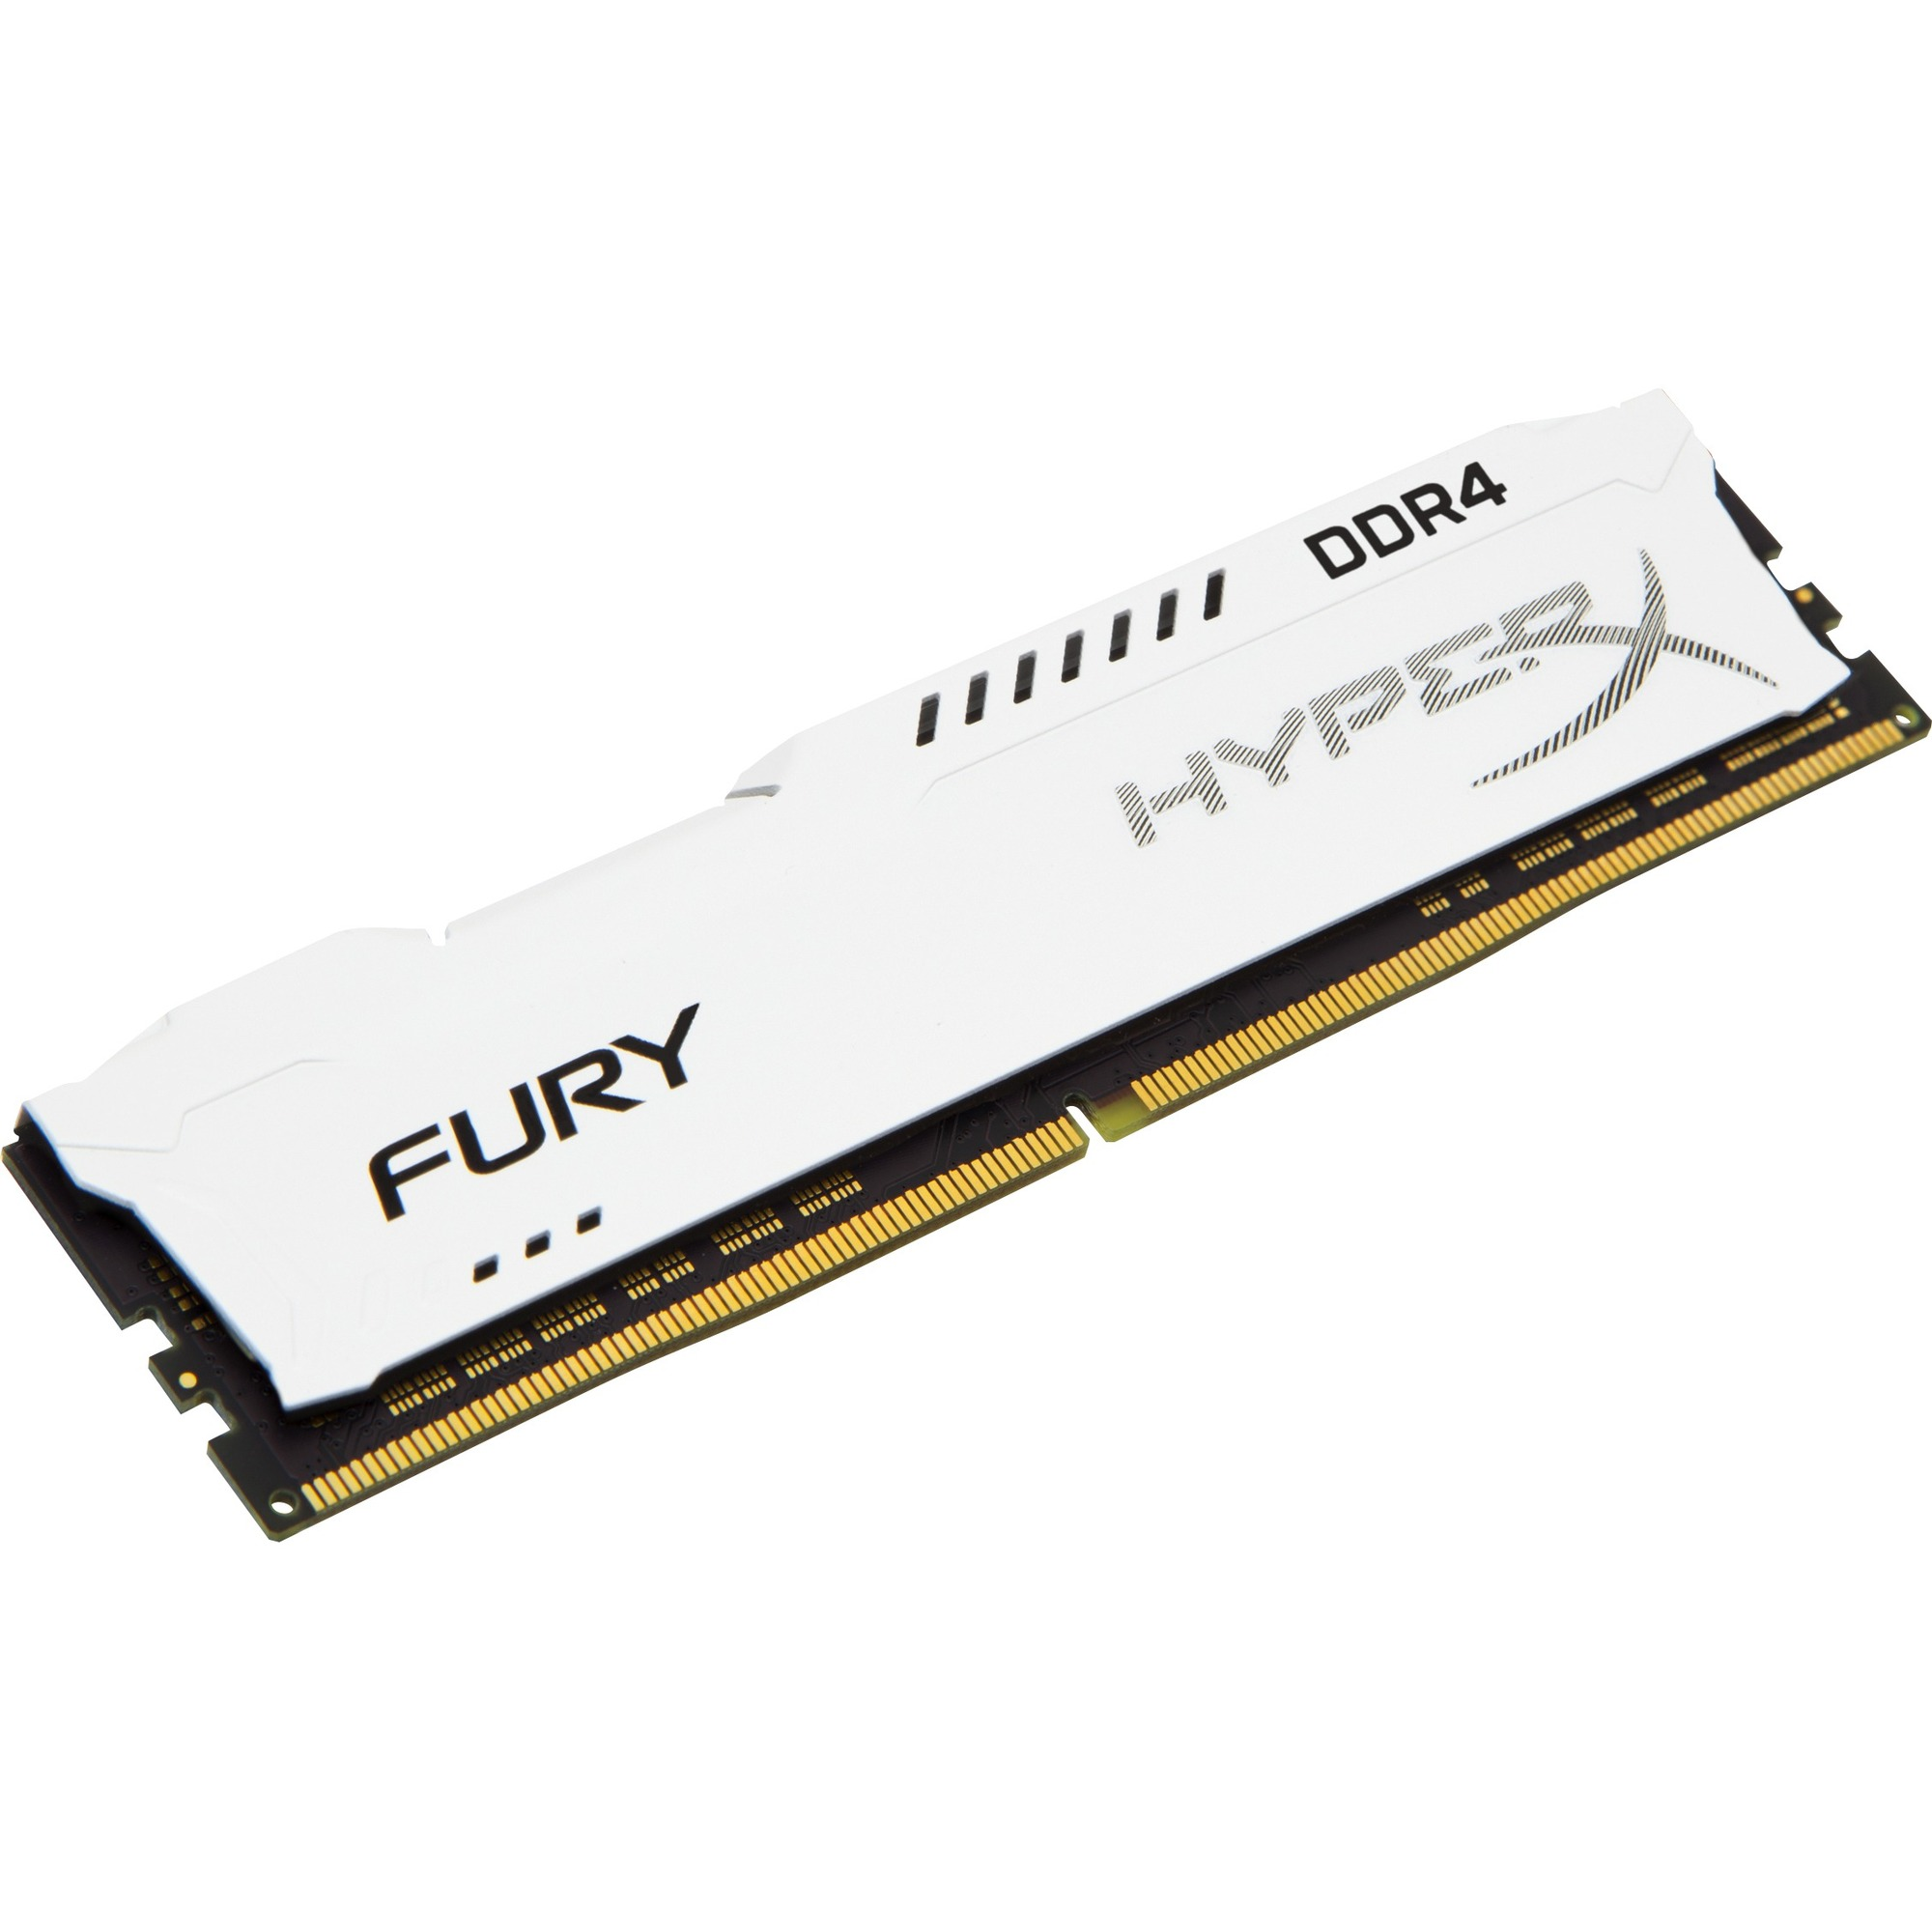 Kingston HyperX Fury RAM Module - 16 GB 1 x 16 GB - DDR4 SDRAM - 2400 MHz DDR4-2400/PC4-19200 - 1.20 V - Non-ECC - Unbuffered - CL15 - 288-pin - DIMM